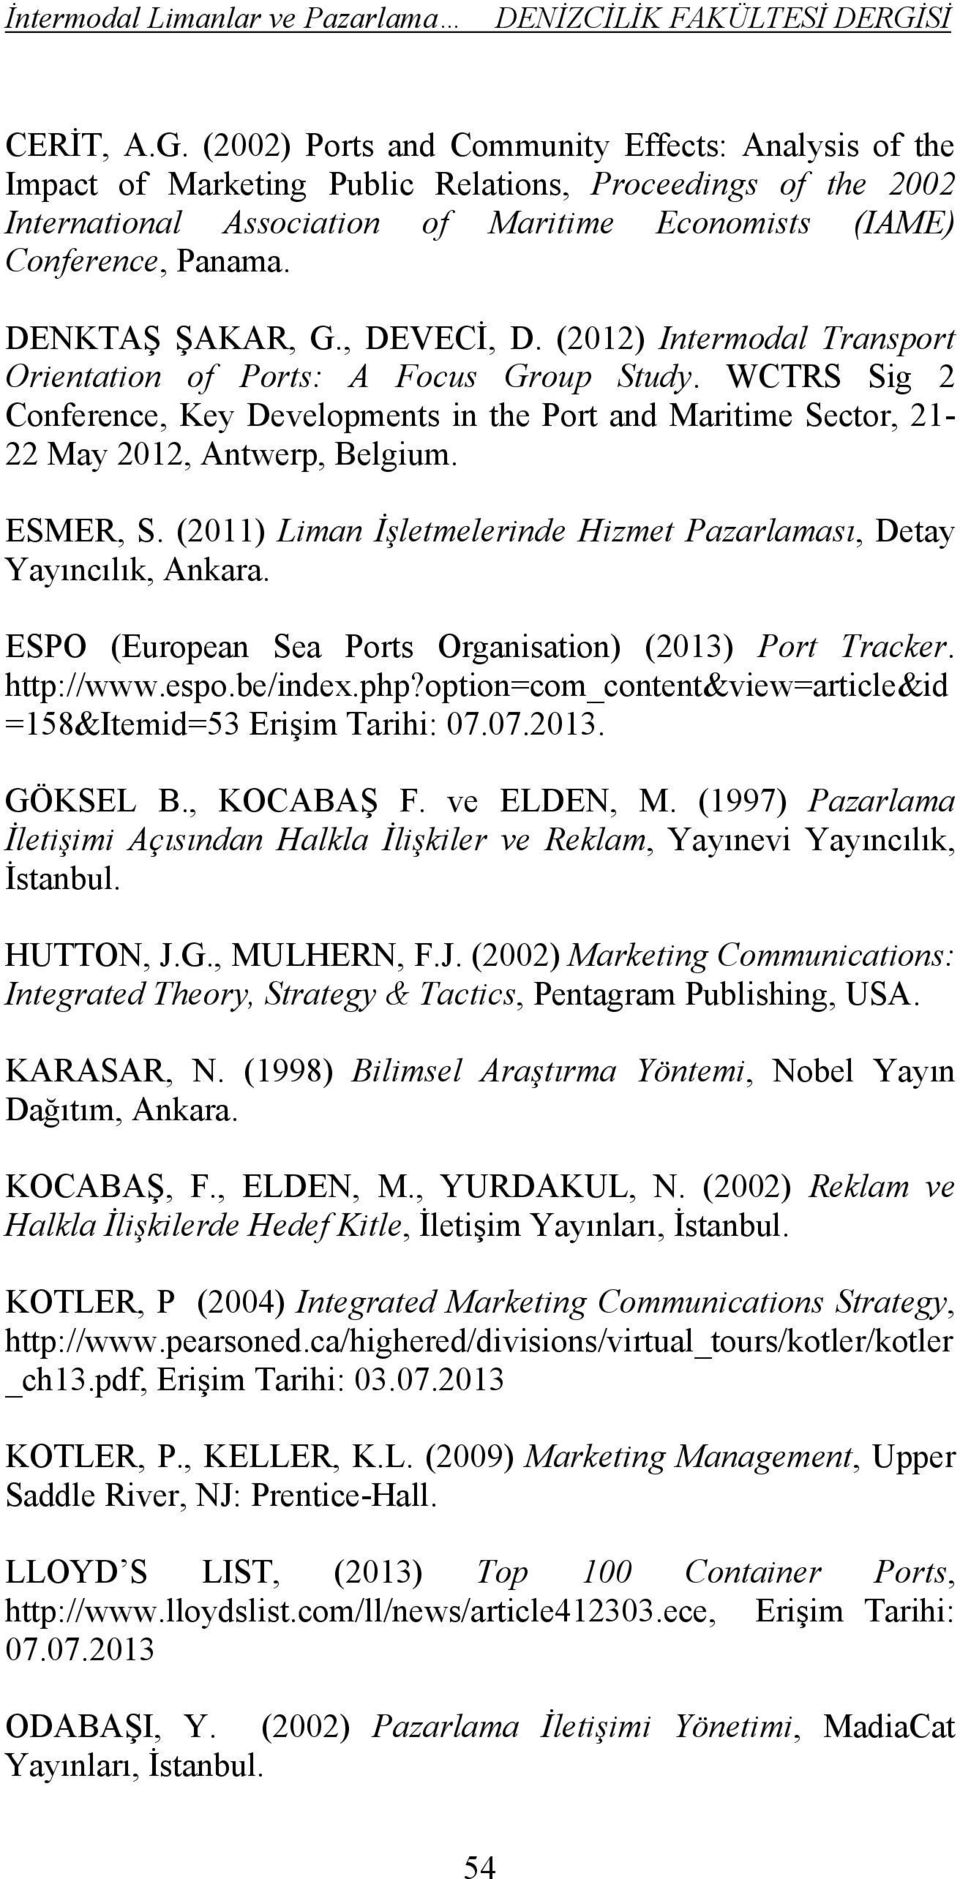 DENKTAŞ ŞAKAR, G., DEVECİ, D. (2012) Intermodal Transport Orientation of Ports: A Focus Group Study.